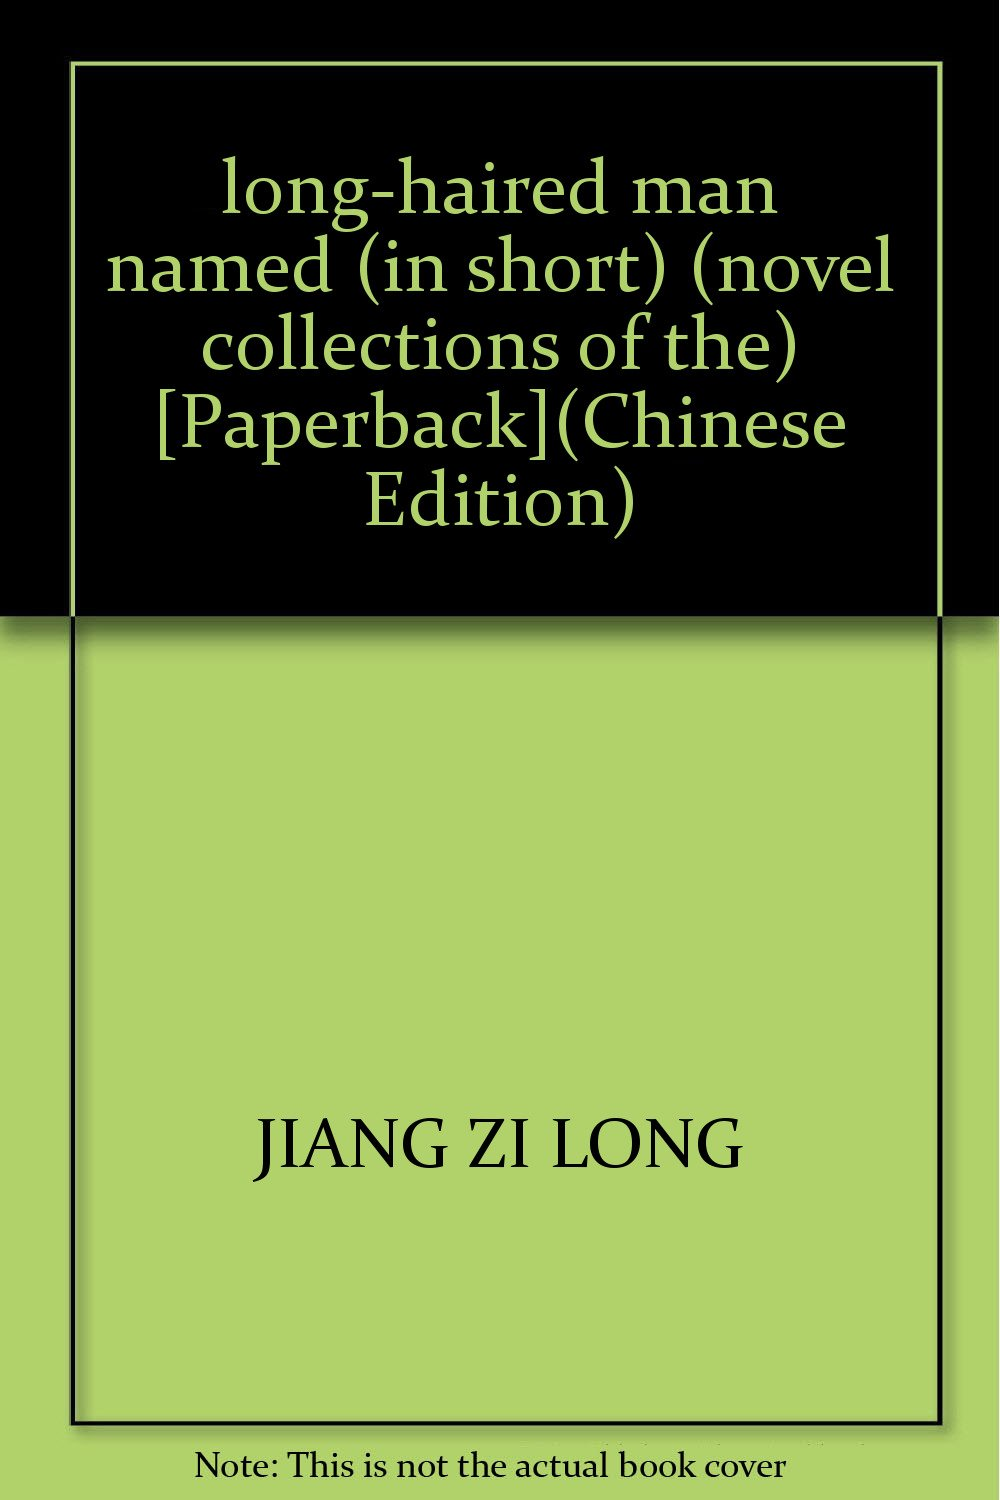 Download long-haired man named (in short) (novel collections of the) [Paperback](Chinese Edition) pdf